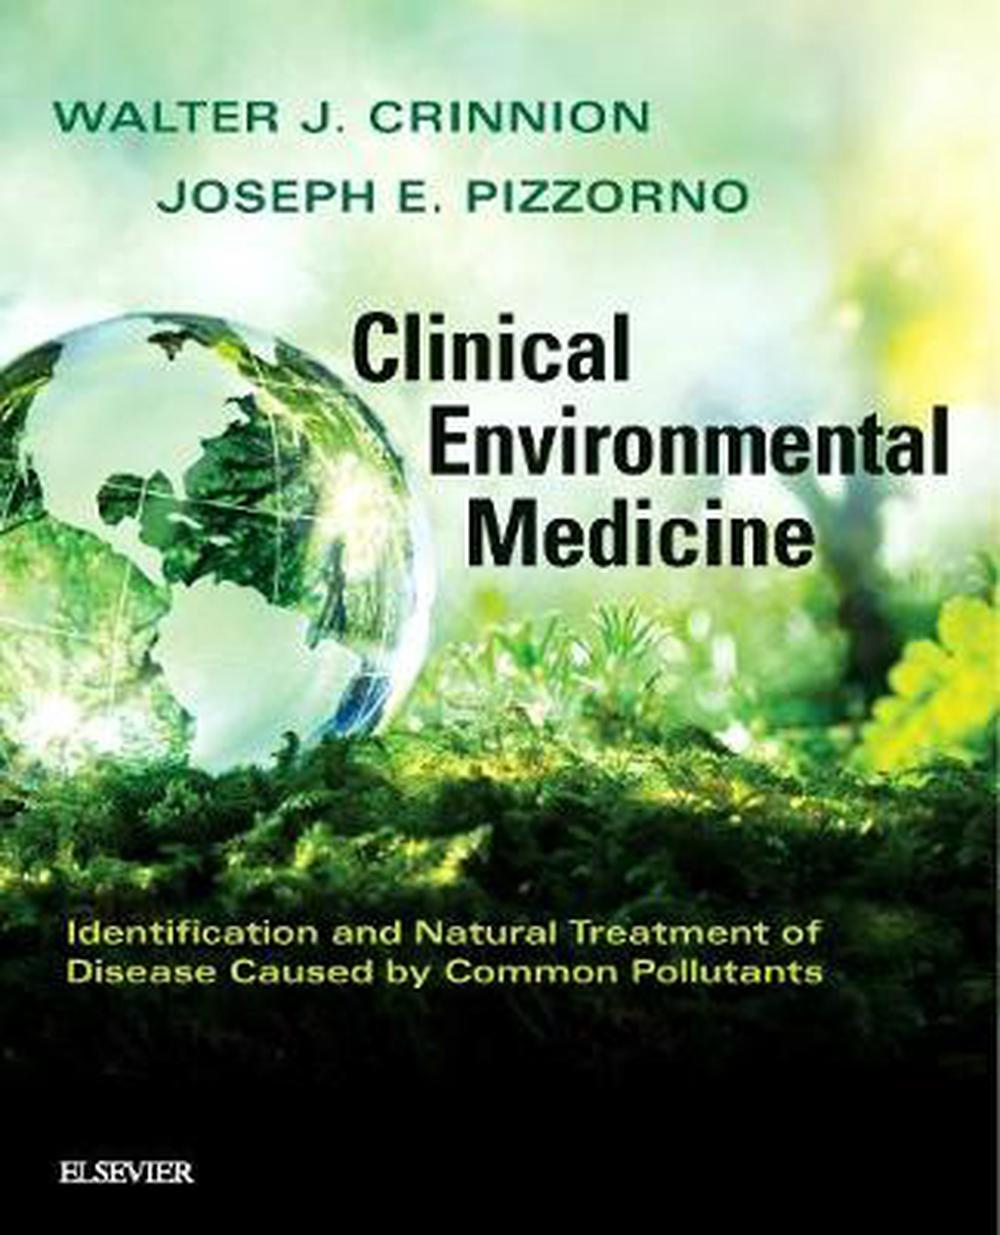 Clinical Environmental Medicine: Identification and Natural Treatment of Diseases Caused by Common Pollutants, 1e by Walter J. Crinnion, ISBN: 9780323480864